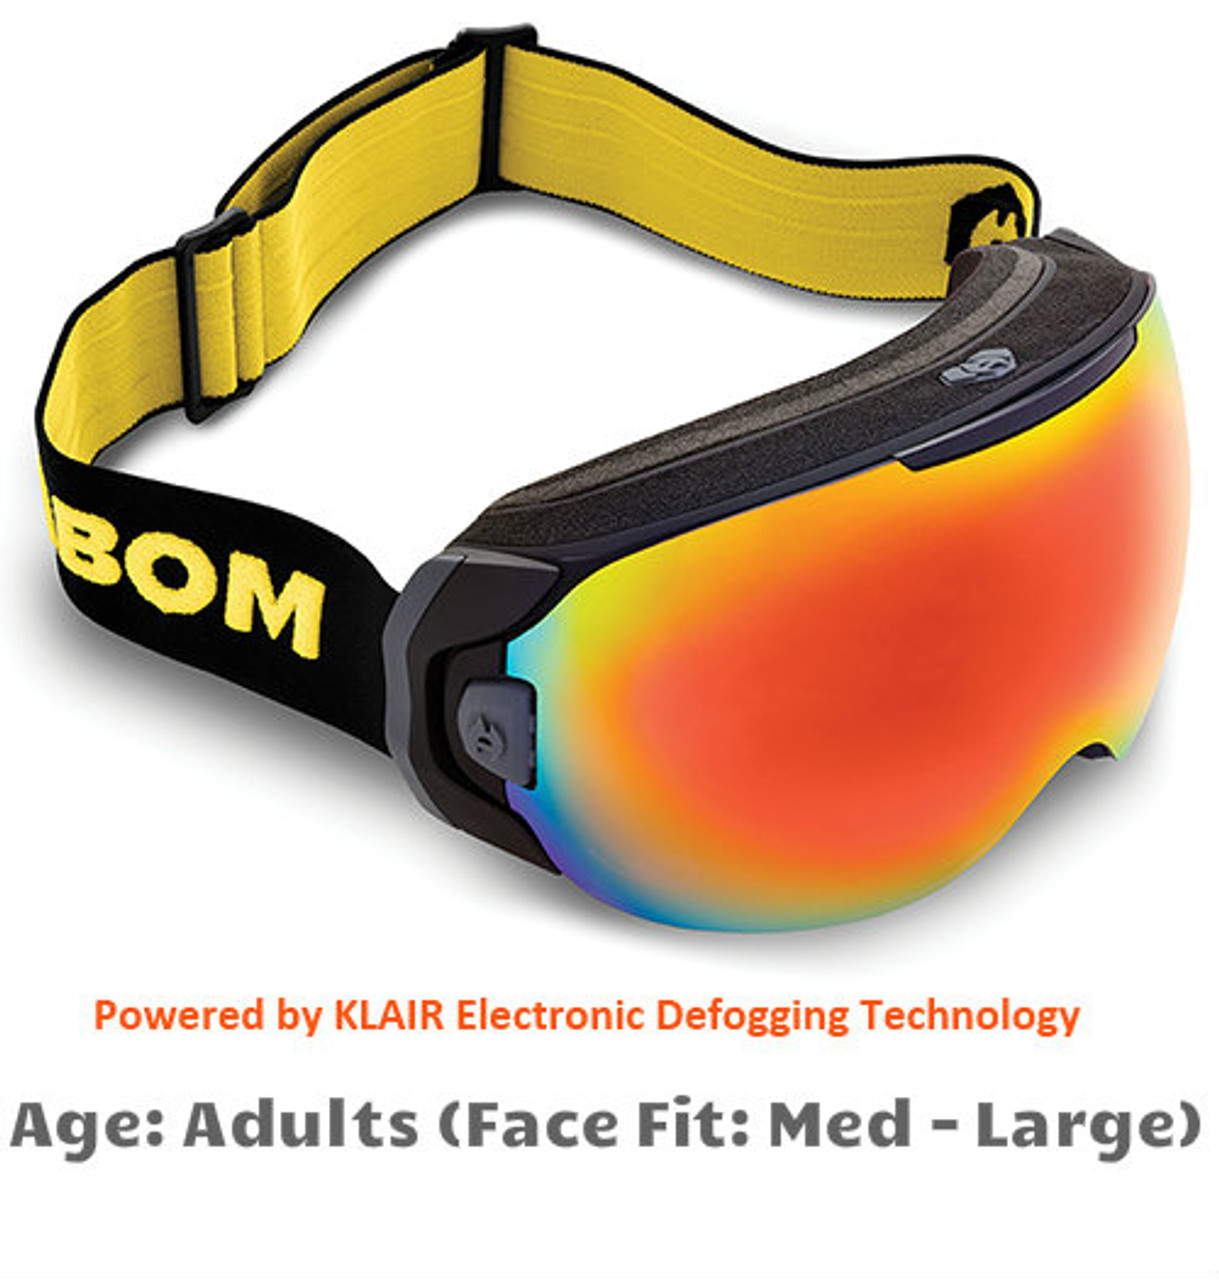 f6539296f9a0 Abom One Sunrise Red Mirror Snow Goggles - Adult Sized Medium to Large Face  Fit